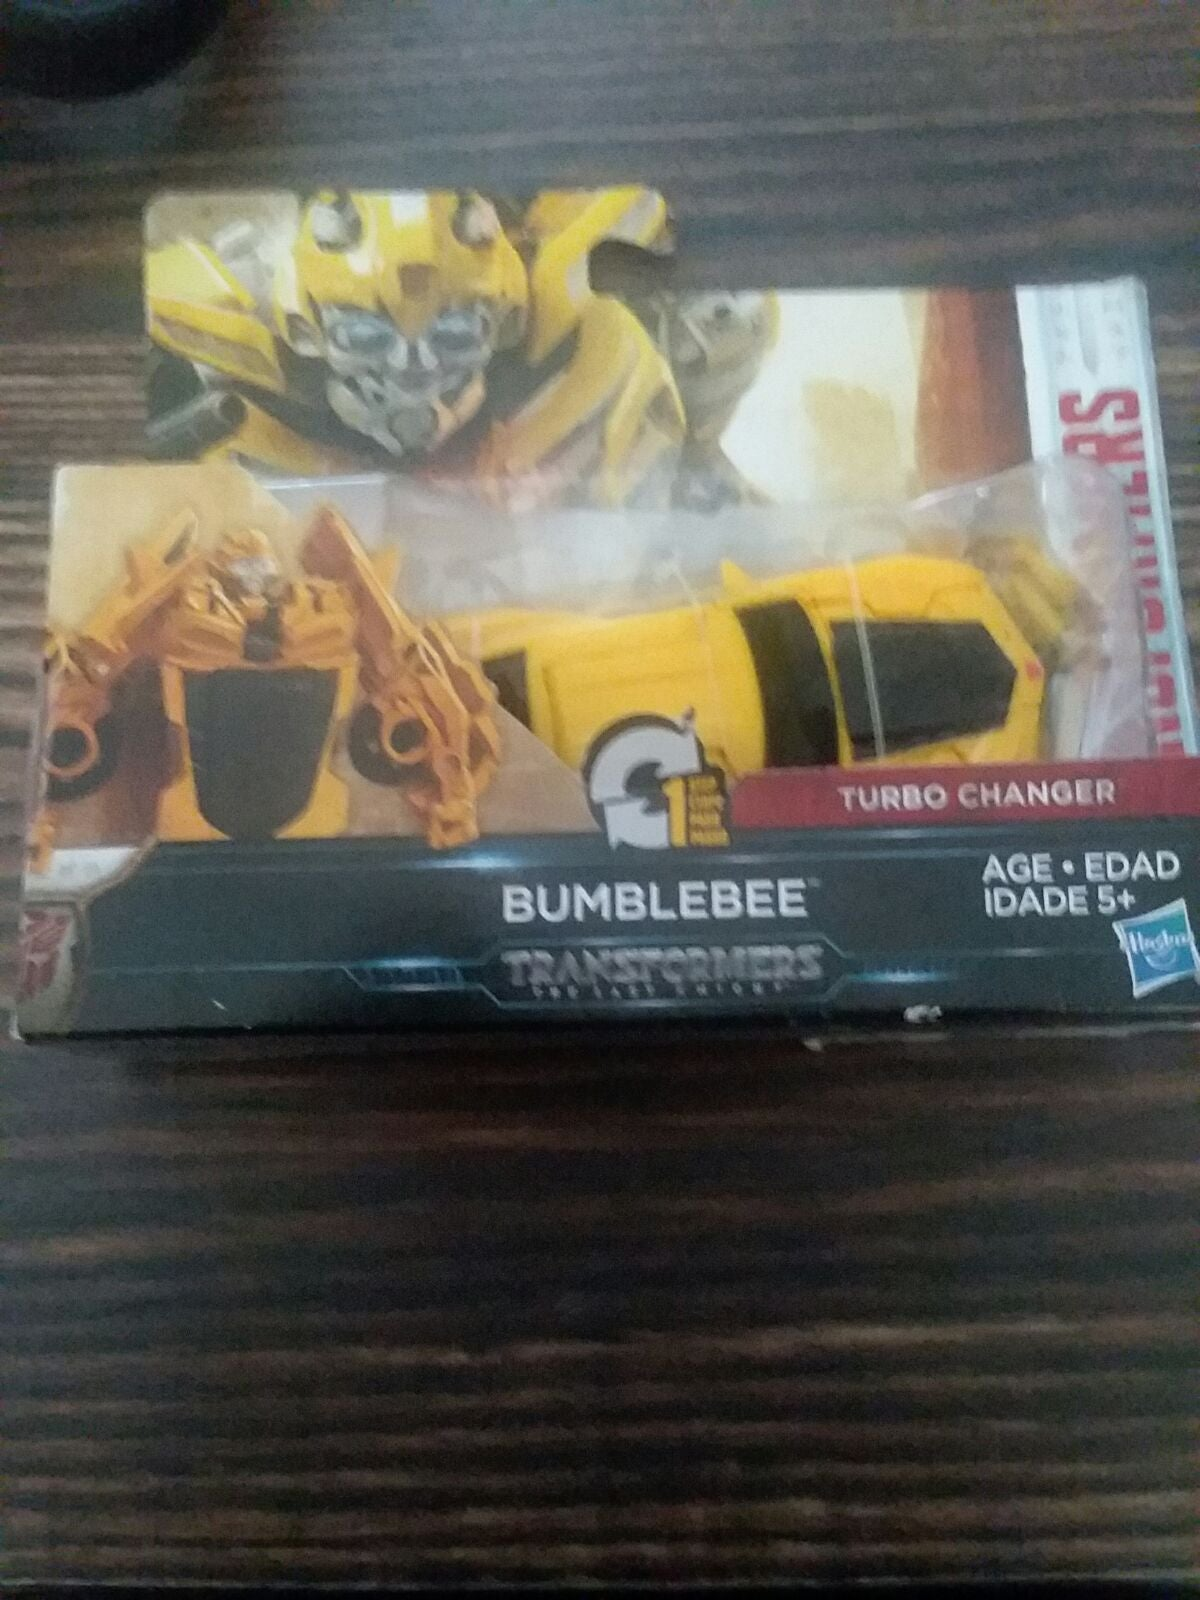 Bumblebee Transformer Hasbro toy 1 touch